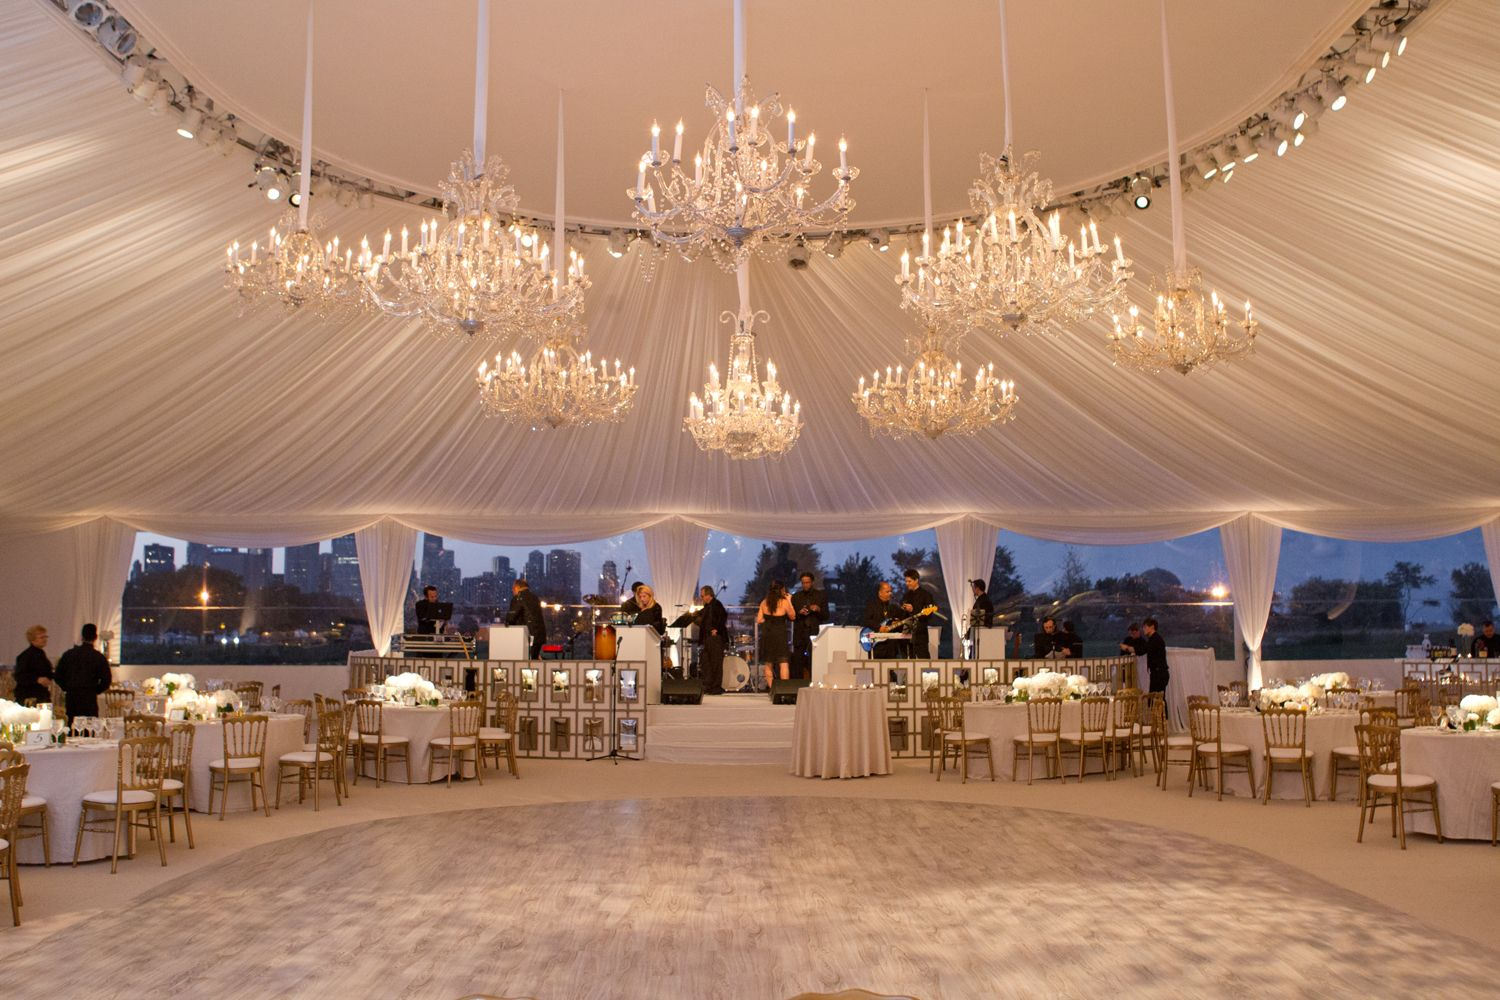 Outdoor Wedding Venues Near Me.Gorgeous Outdoor Wedding Reception Venues Near Me 15 Best Outdoor